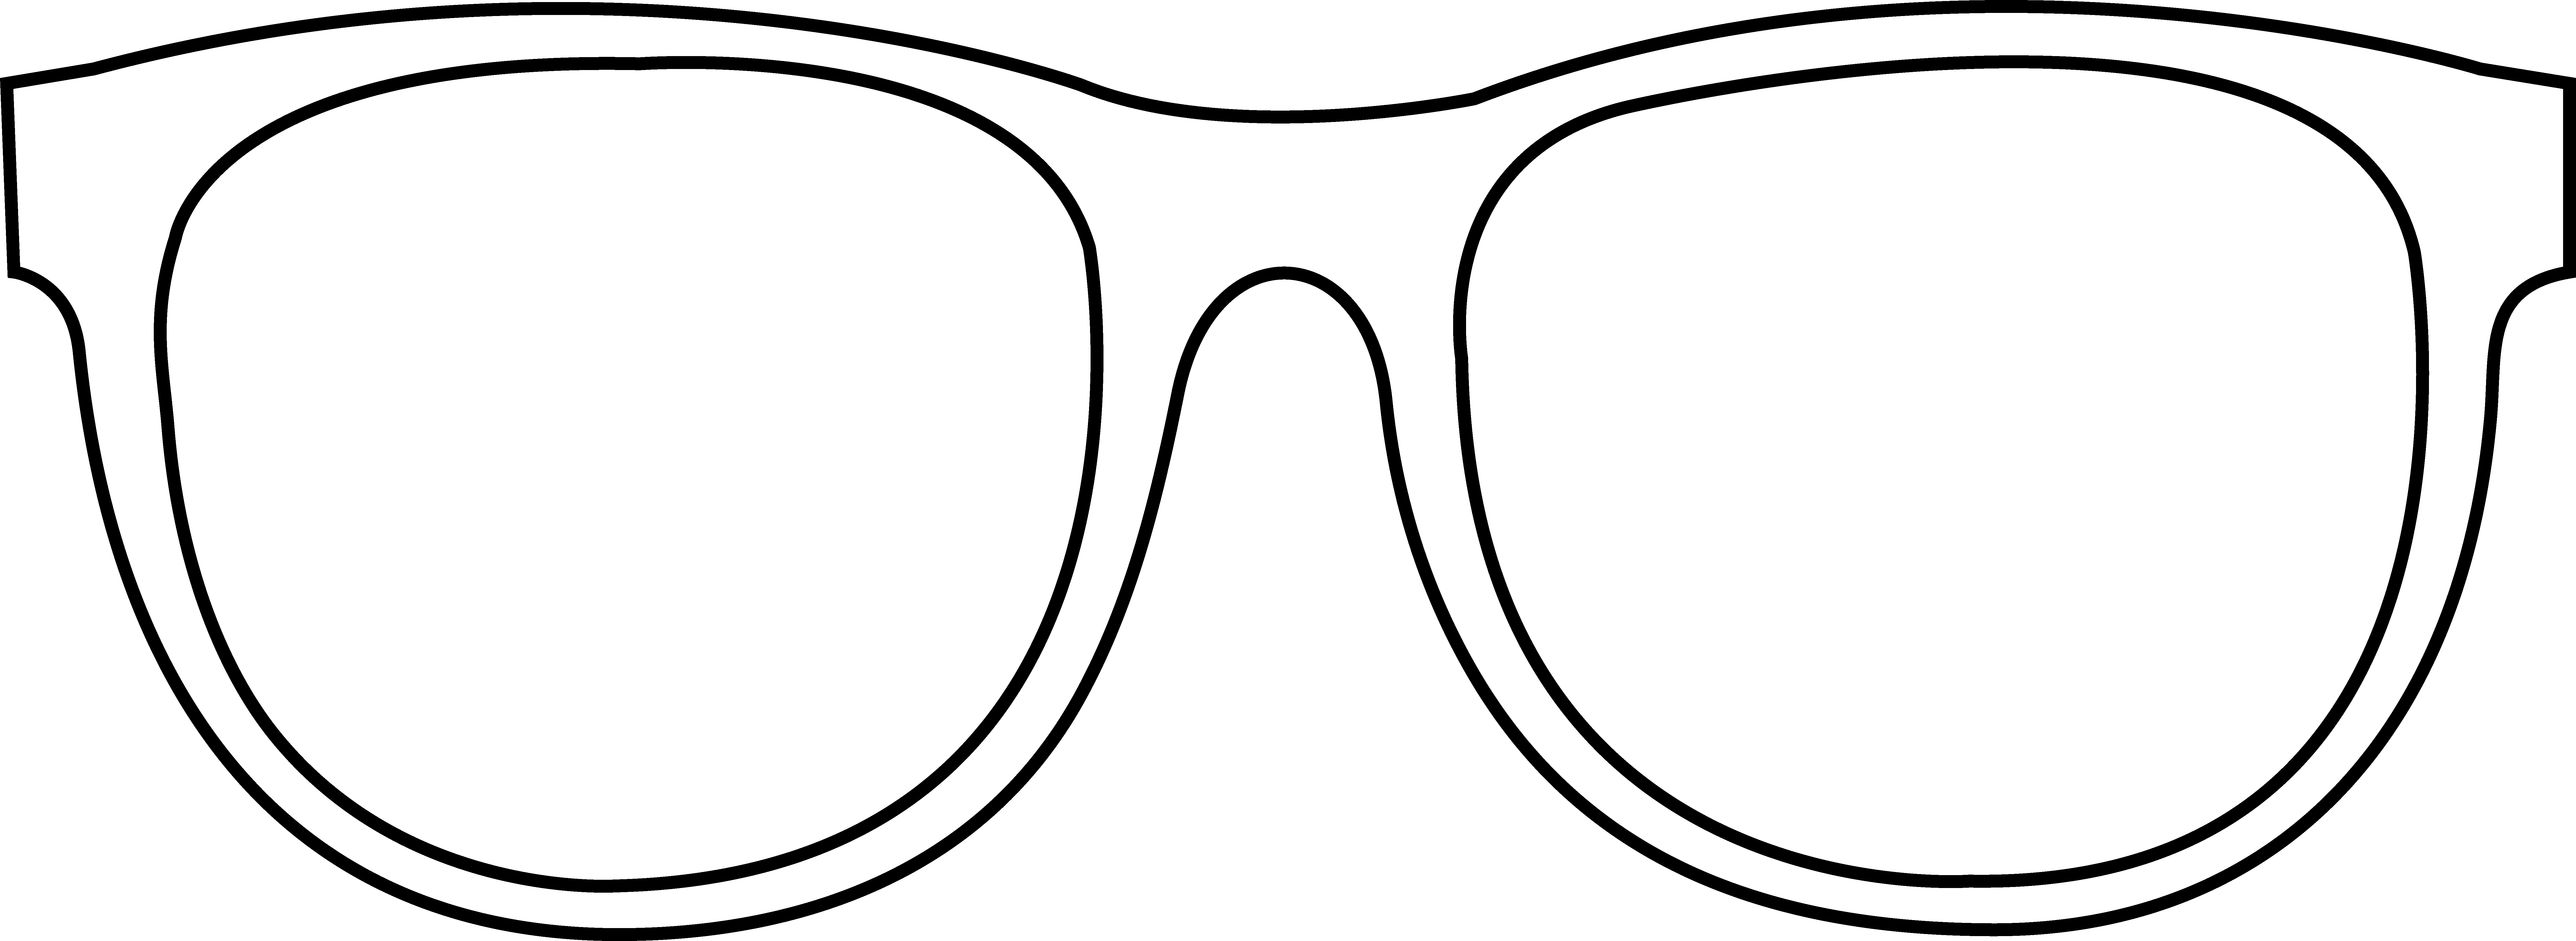 Printable free collection download. Sunglasses clipart clip art